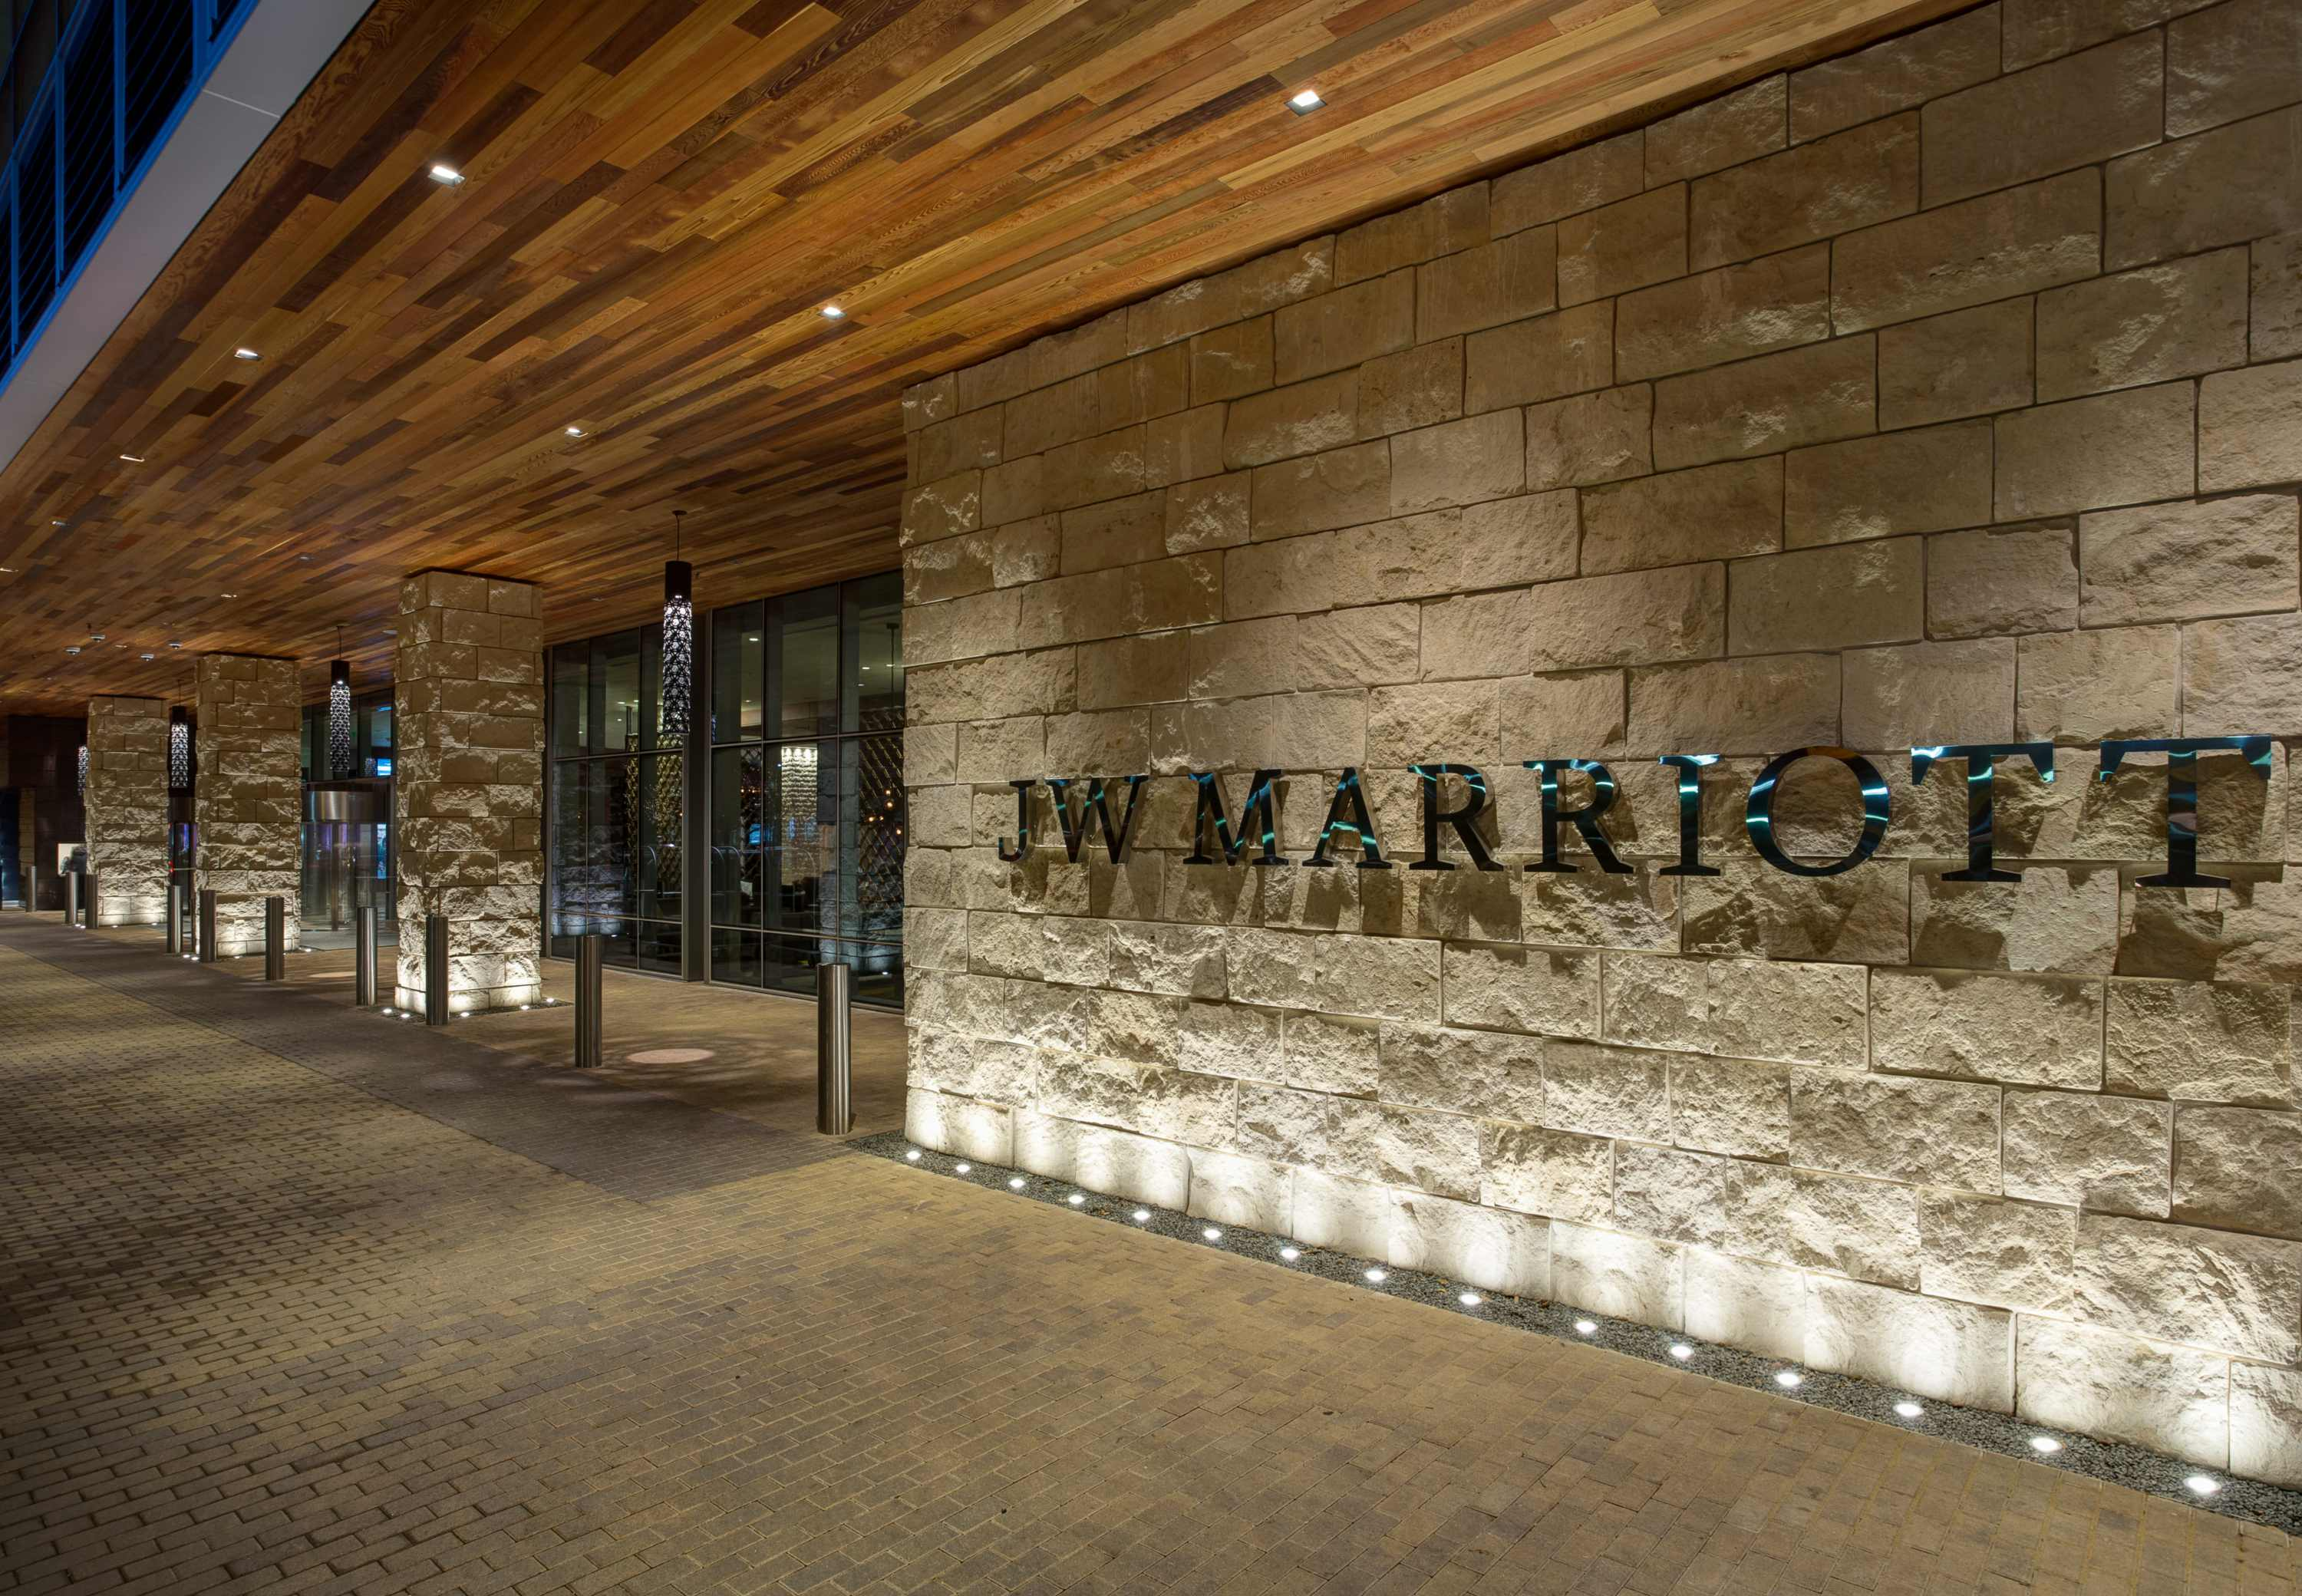 JW Marriott Austin image 26